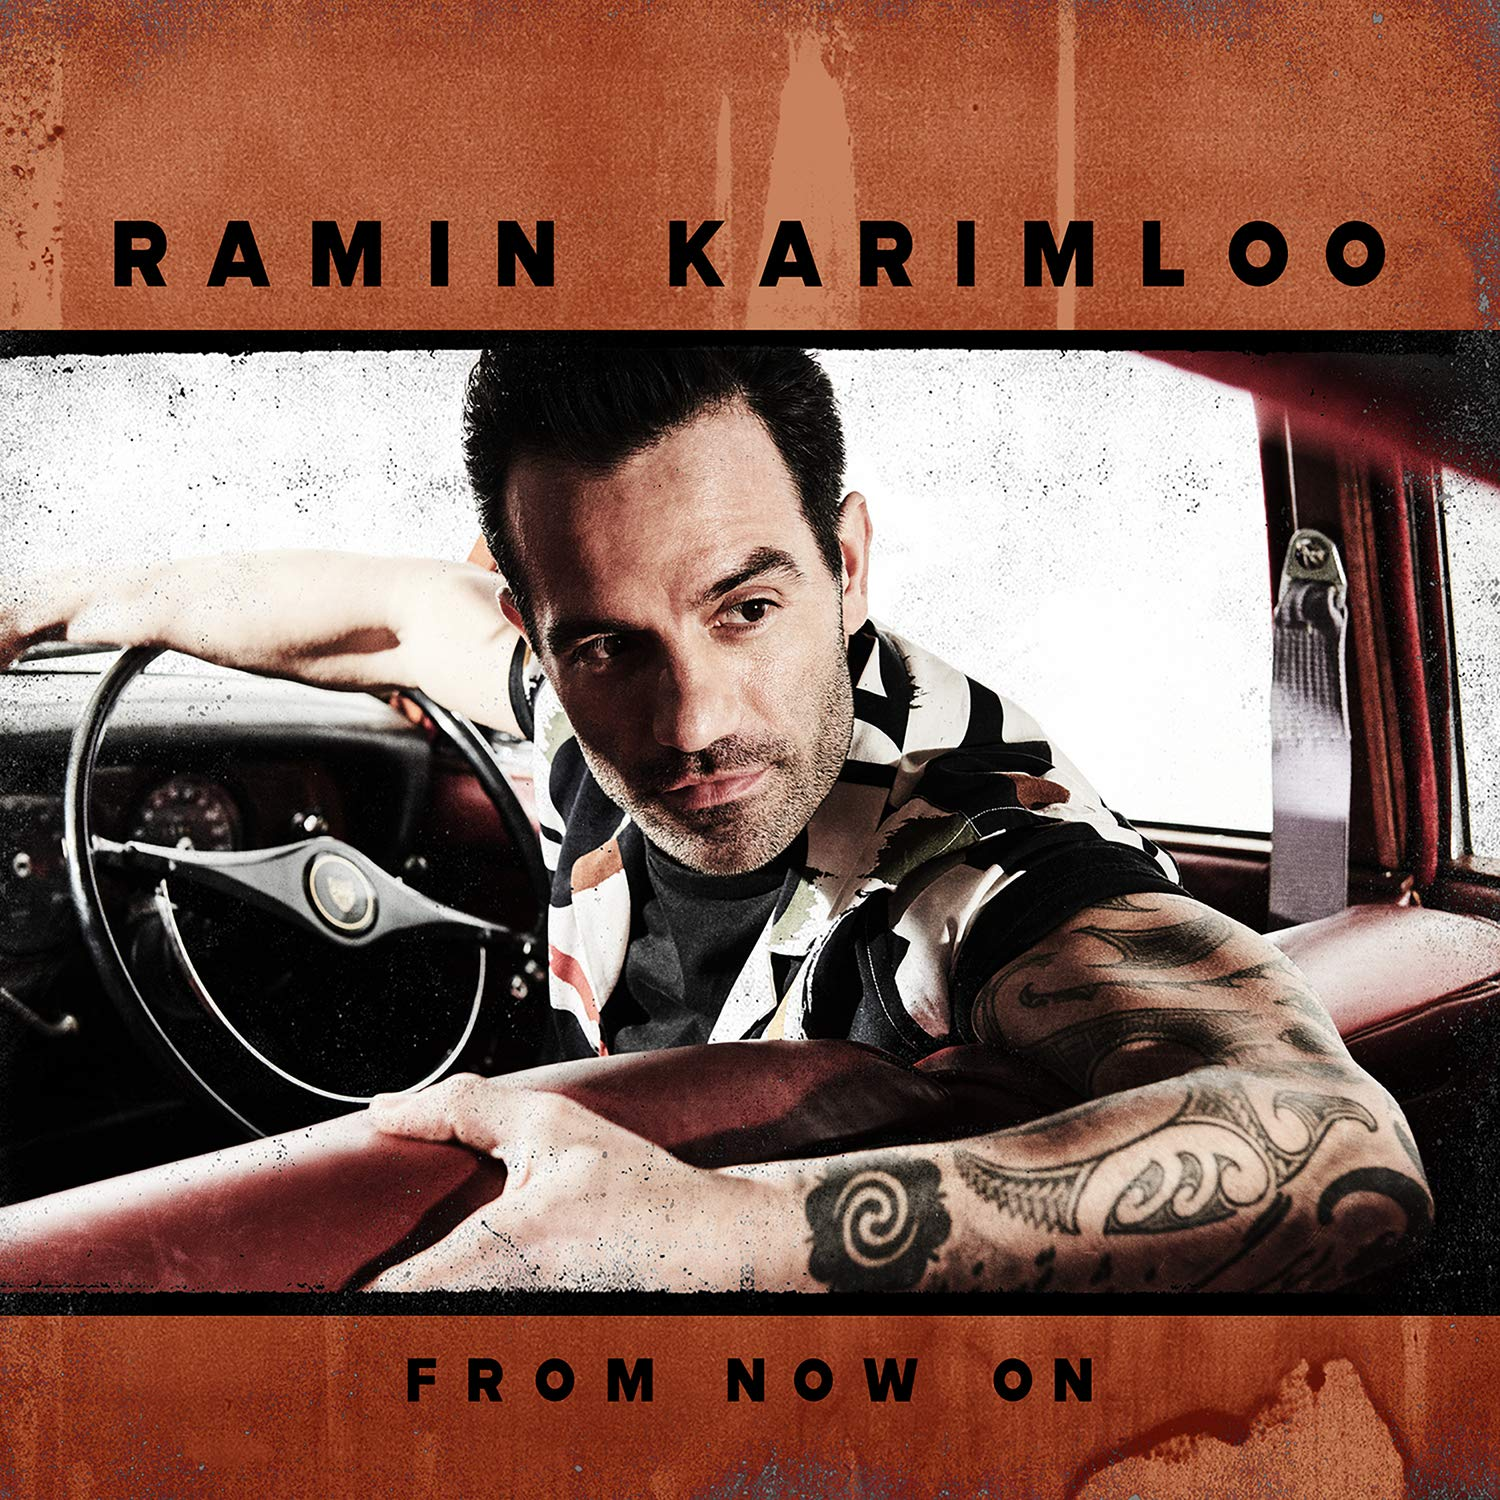 Ramin Karimloo From Now On.